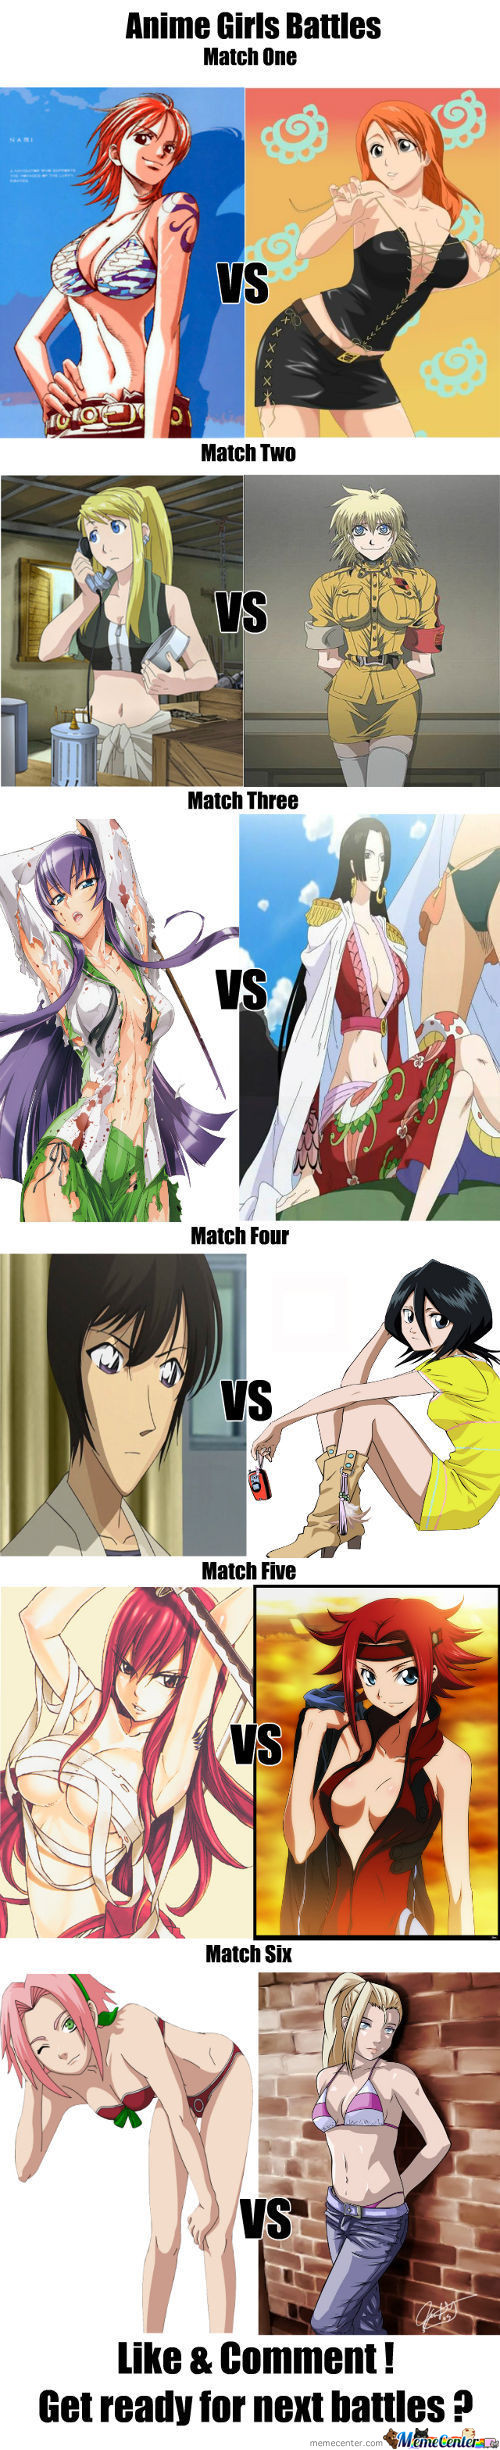 Anime Girls Battles